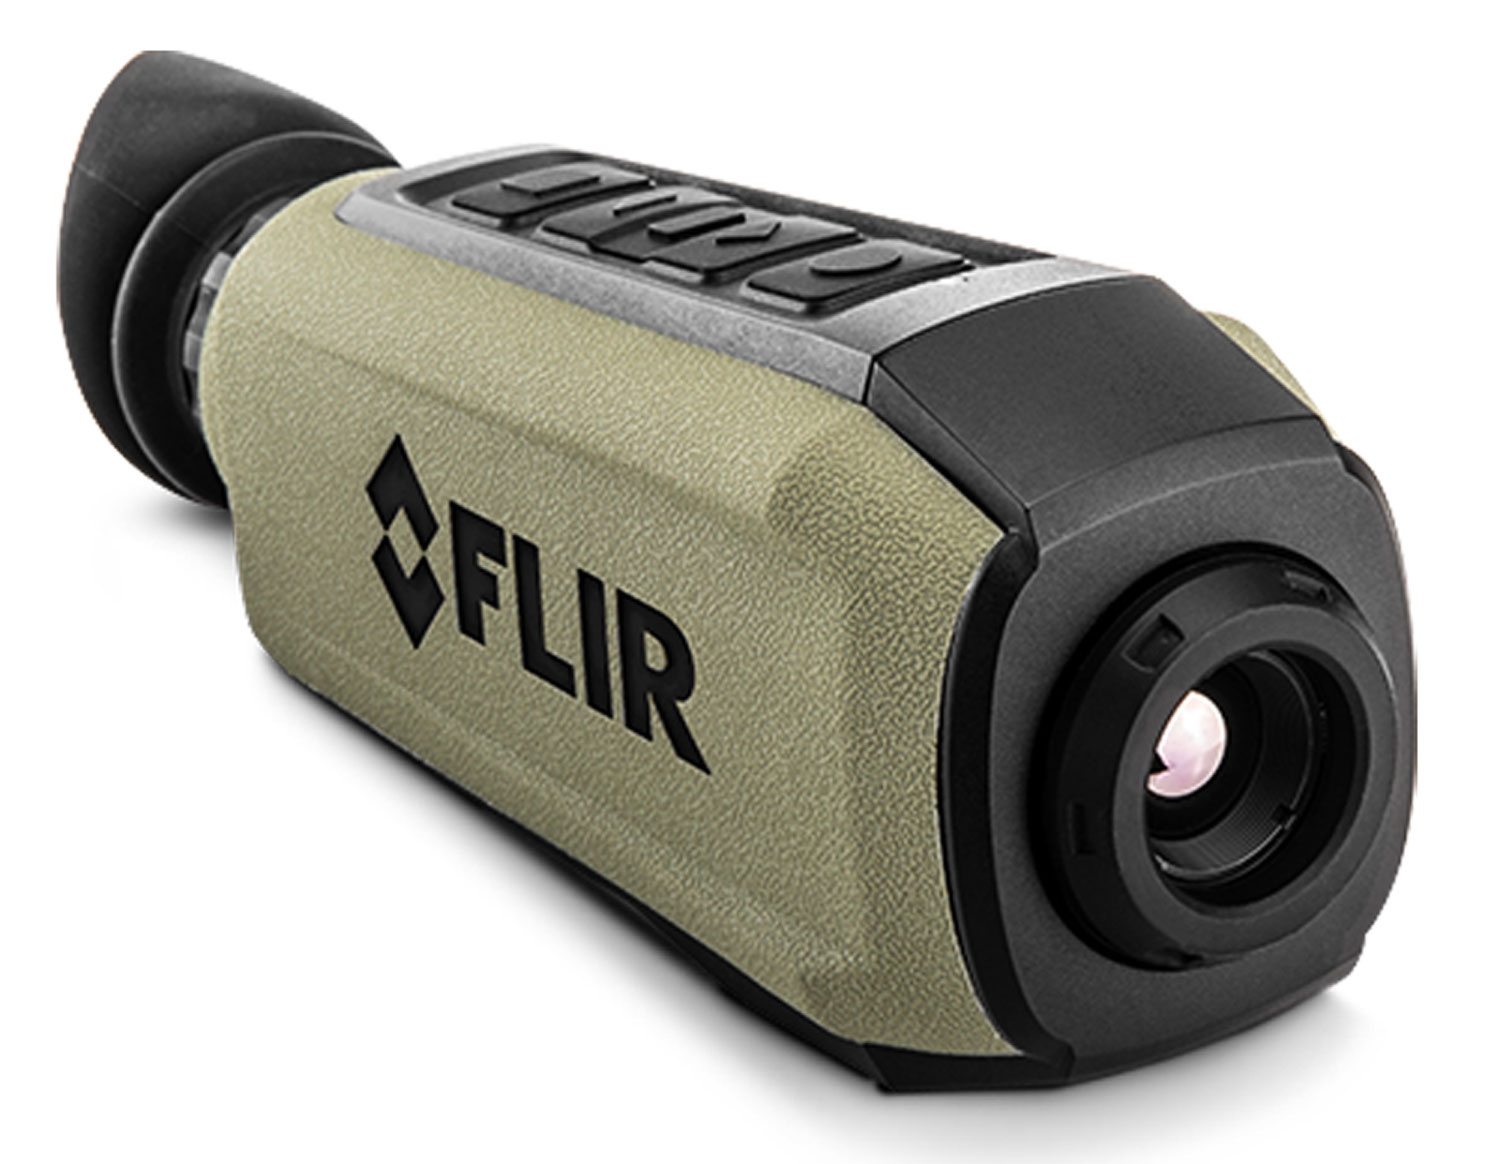 FLIR SCION OTM 266 640 60HZ 18MM